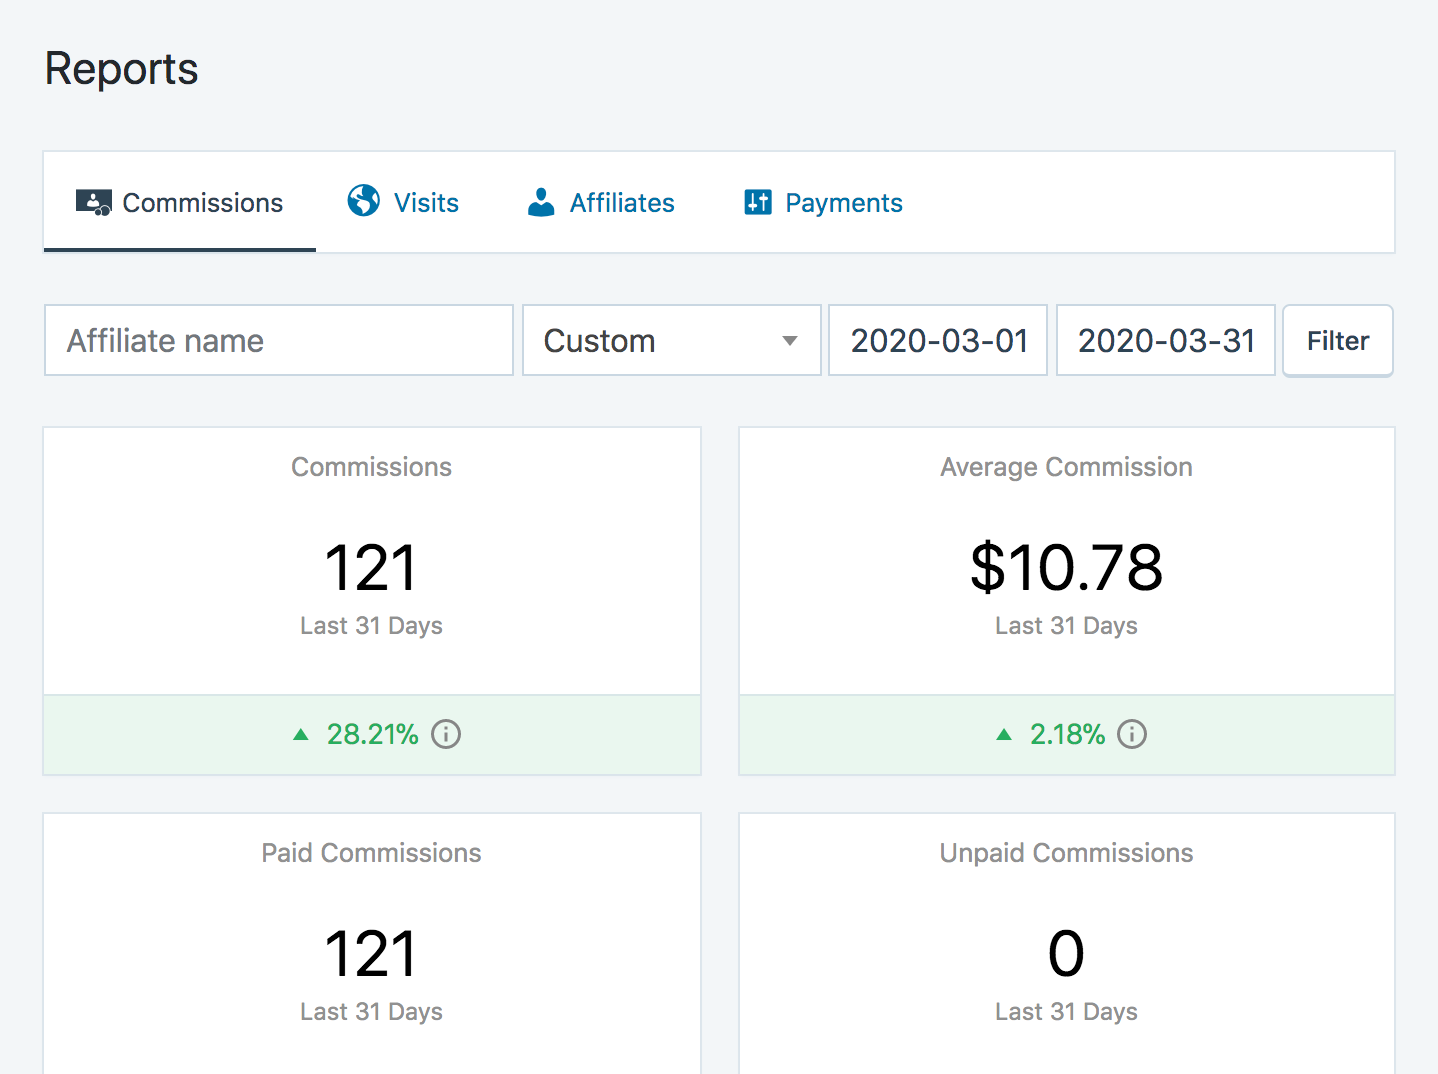 The reports page showing the affiliates' activity.